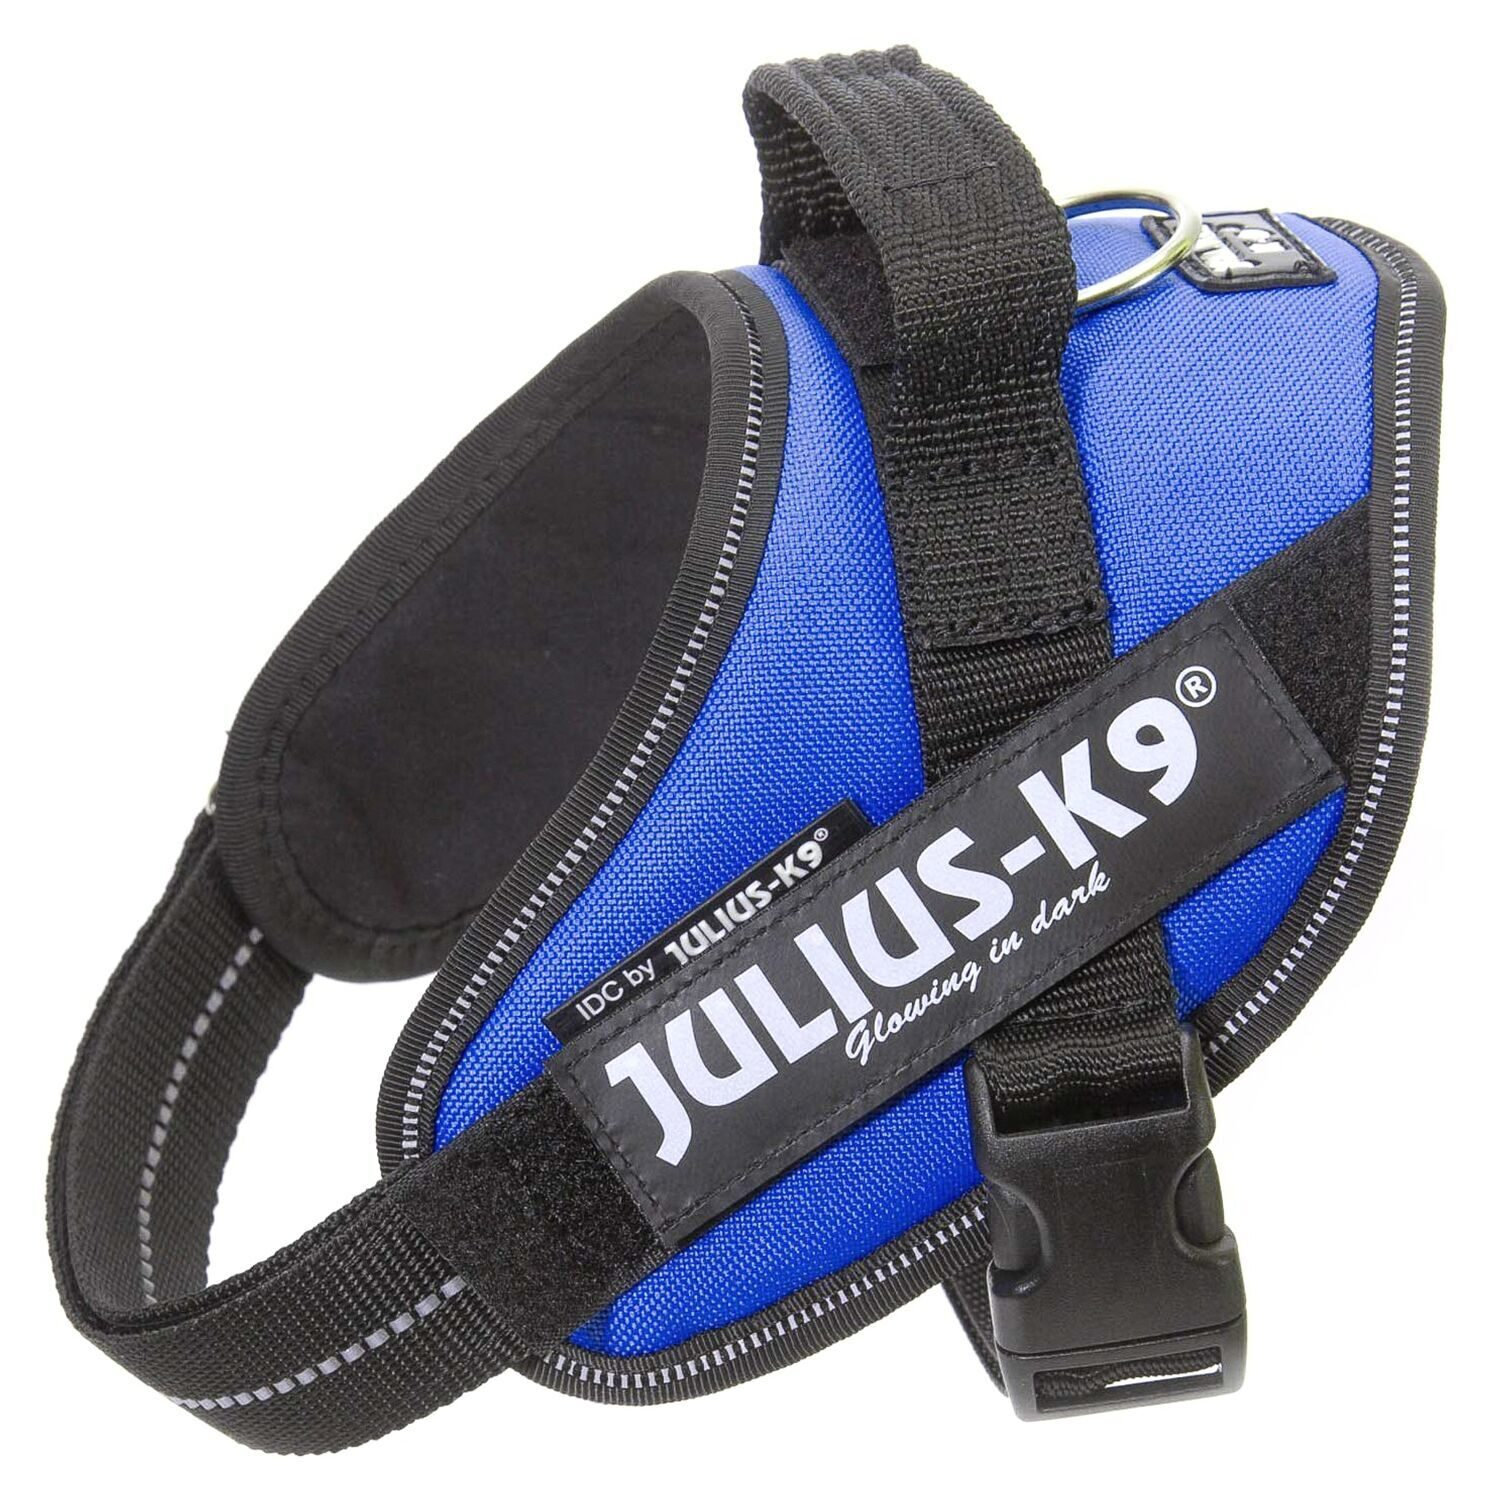 JULIUS-K9 шлейка для собак IDC-Powerharness Mini (49-67см/ 7-15кг), синий